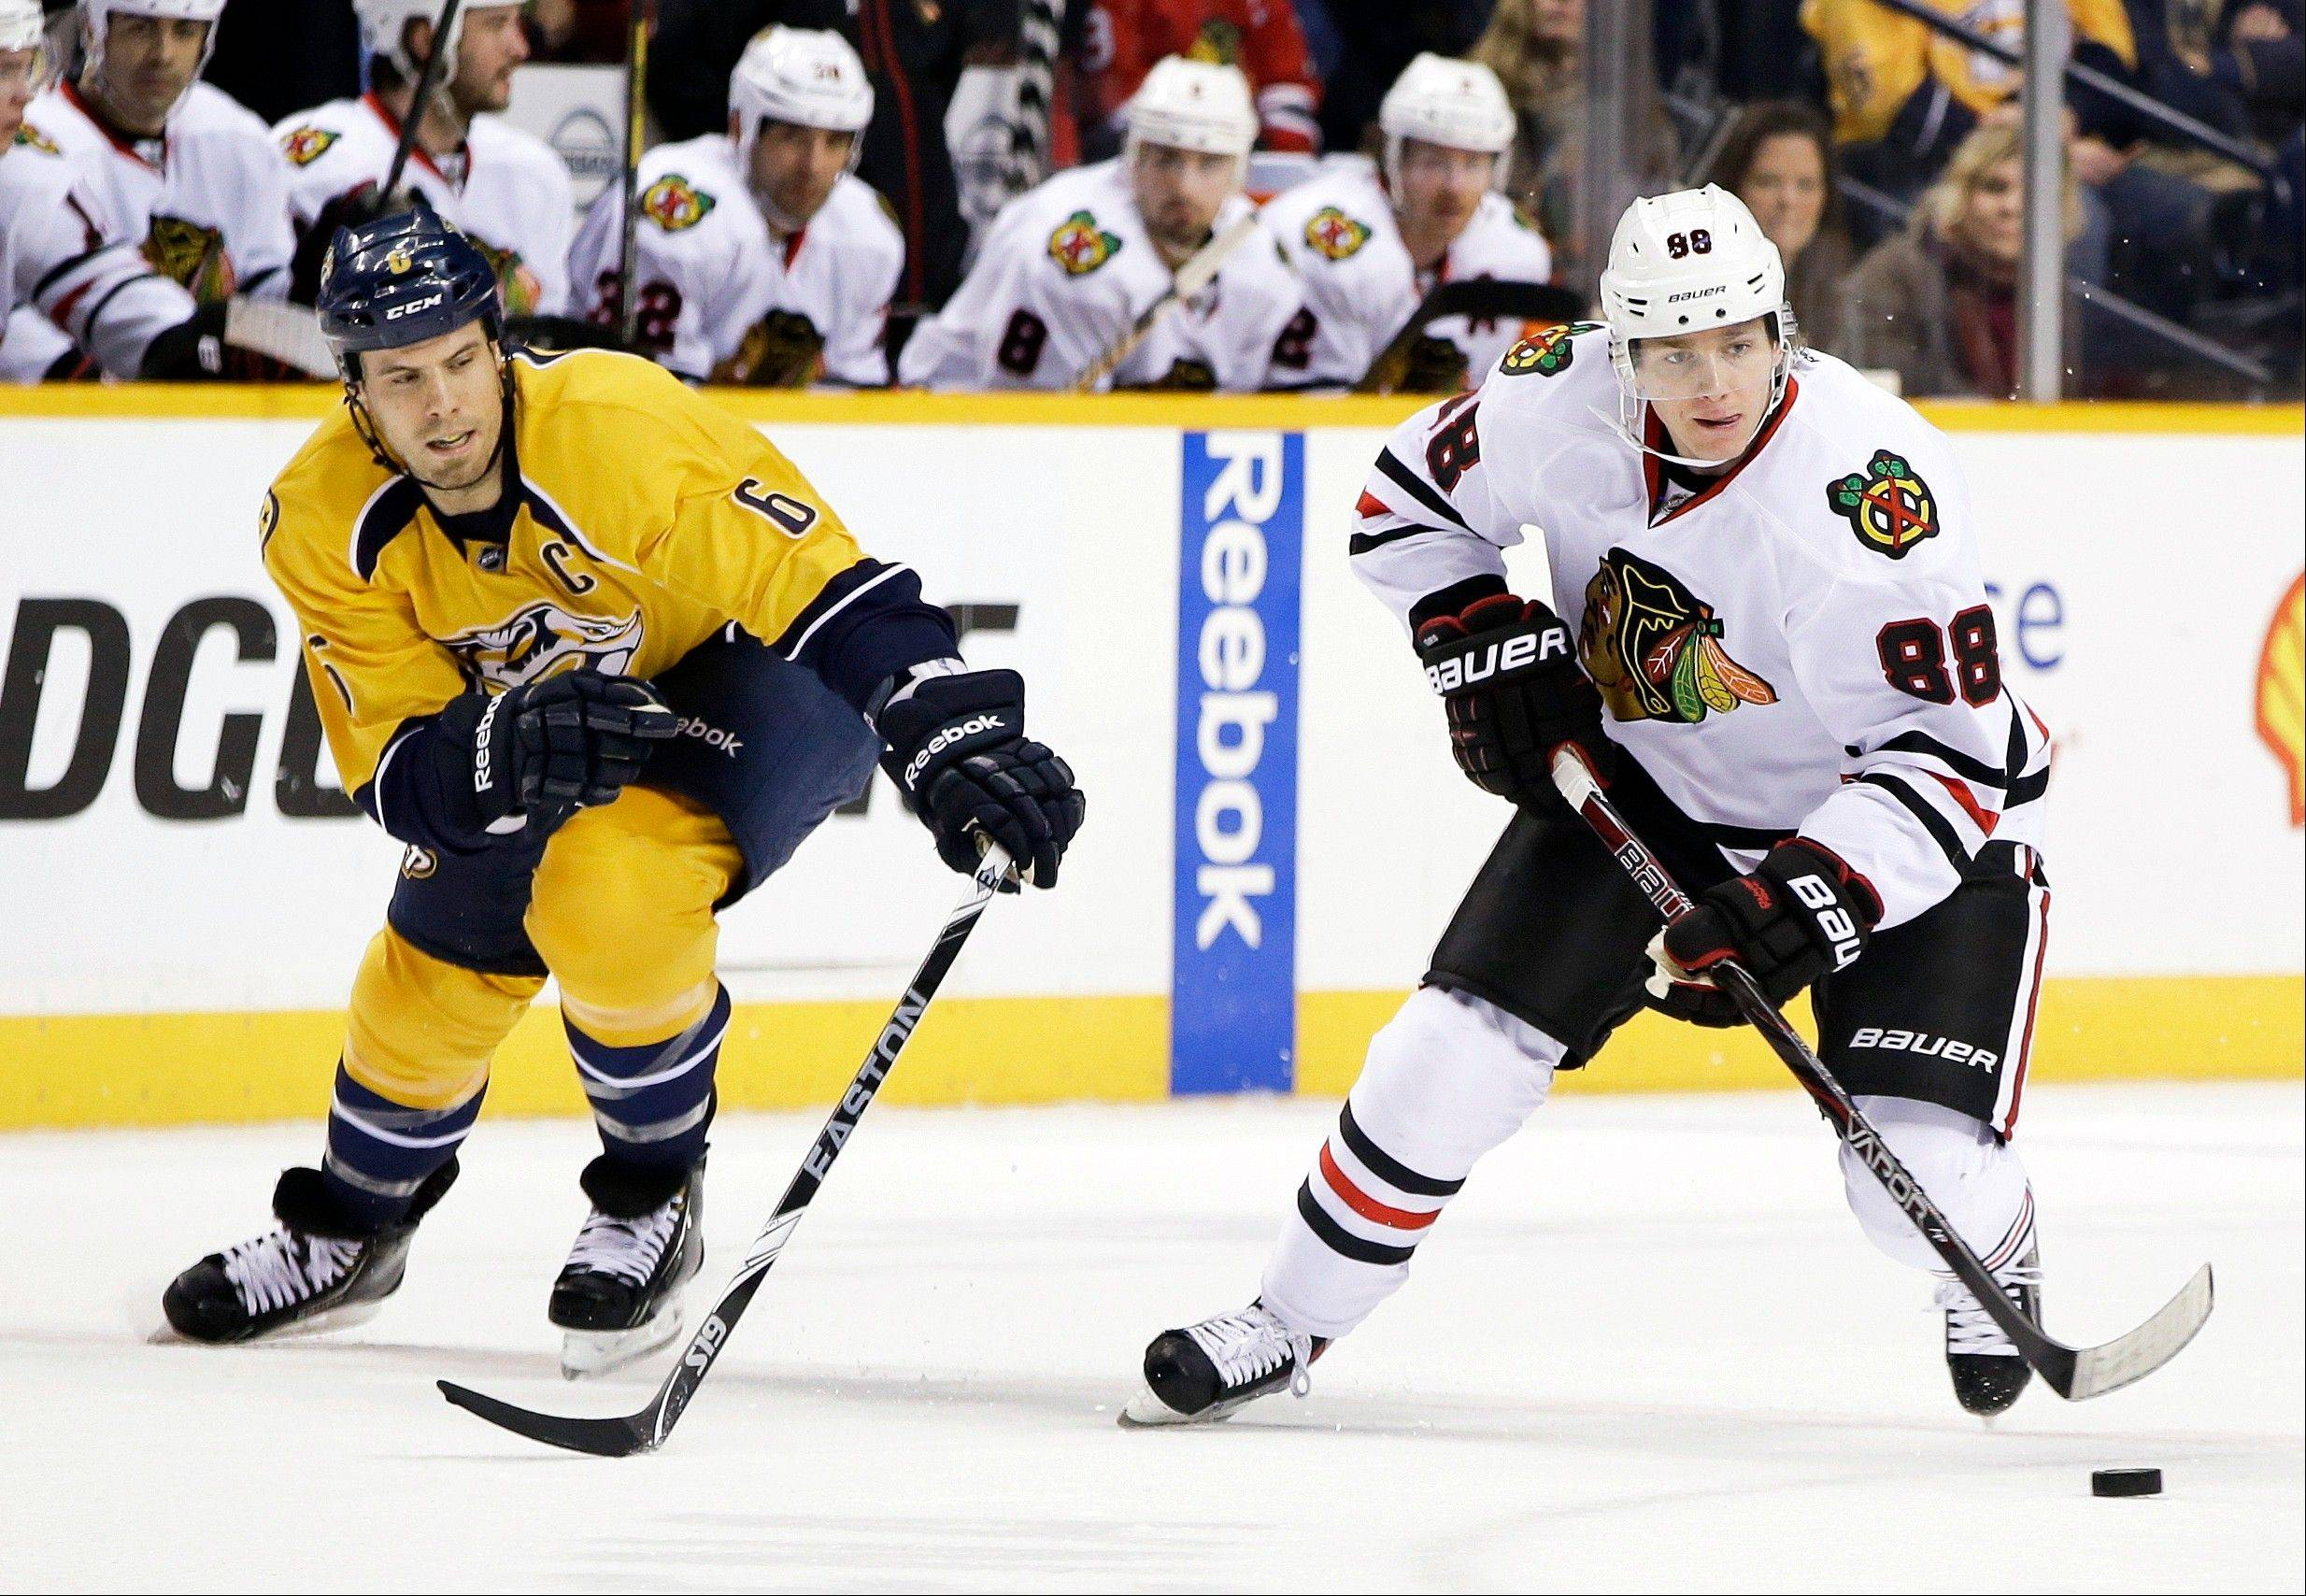 The Blackhawks' Patrick Kane, here moving past Nashville's Shea Weber, has 20 points in the first 13 games.